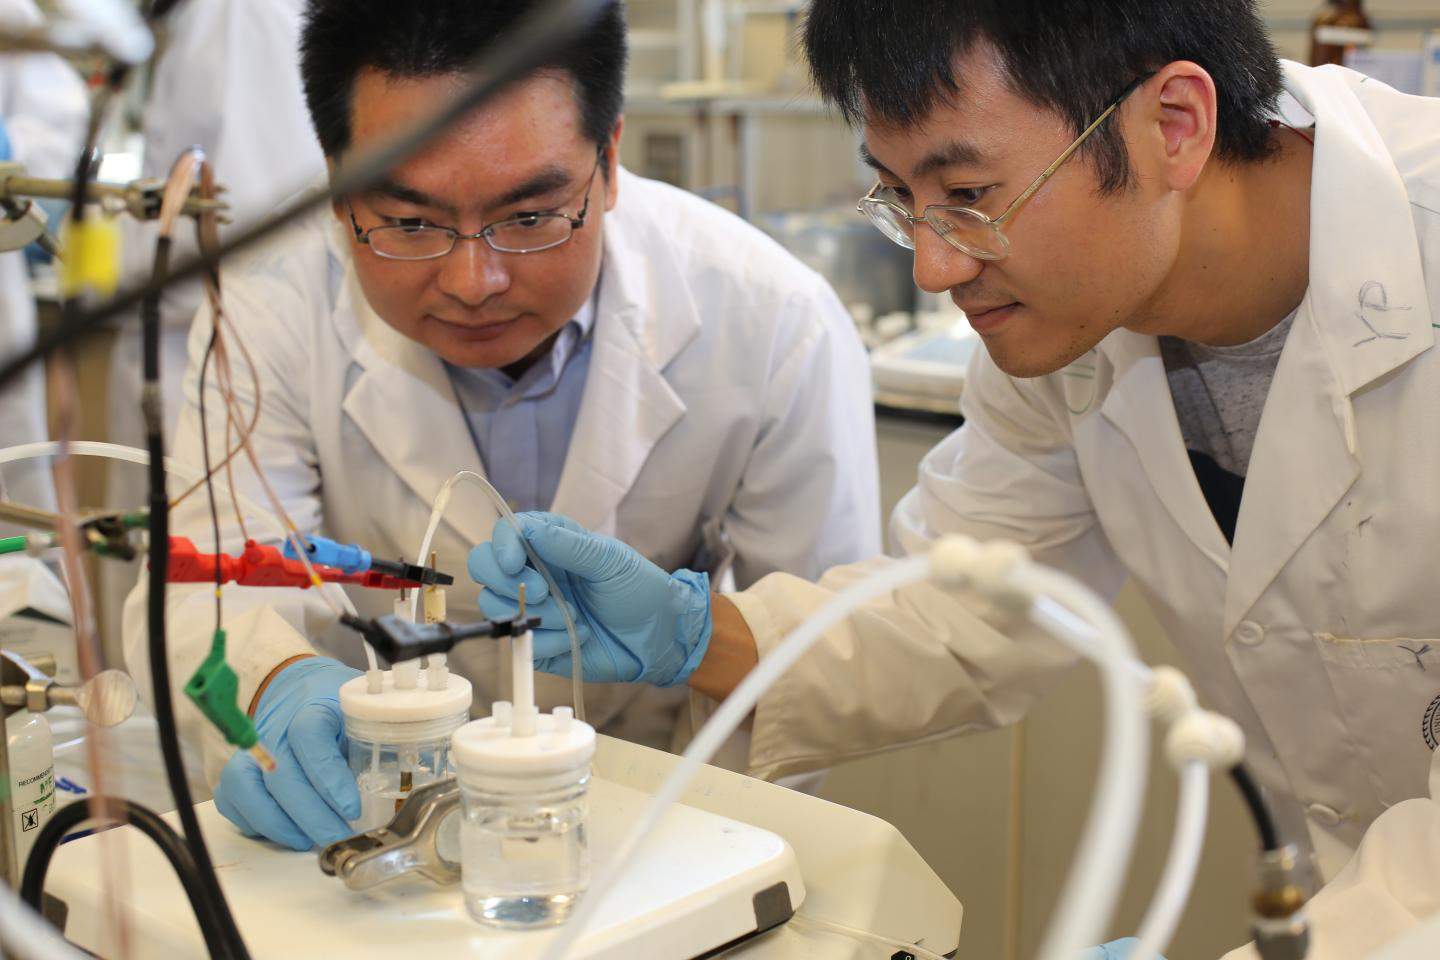 Liu & Pang, University of Toronto Faculty and Applied Science & Engineering